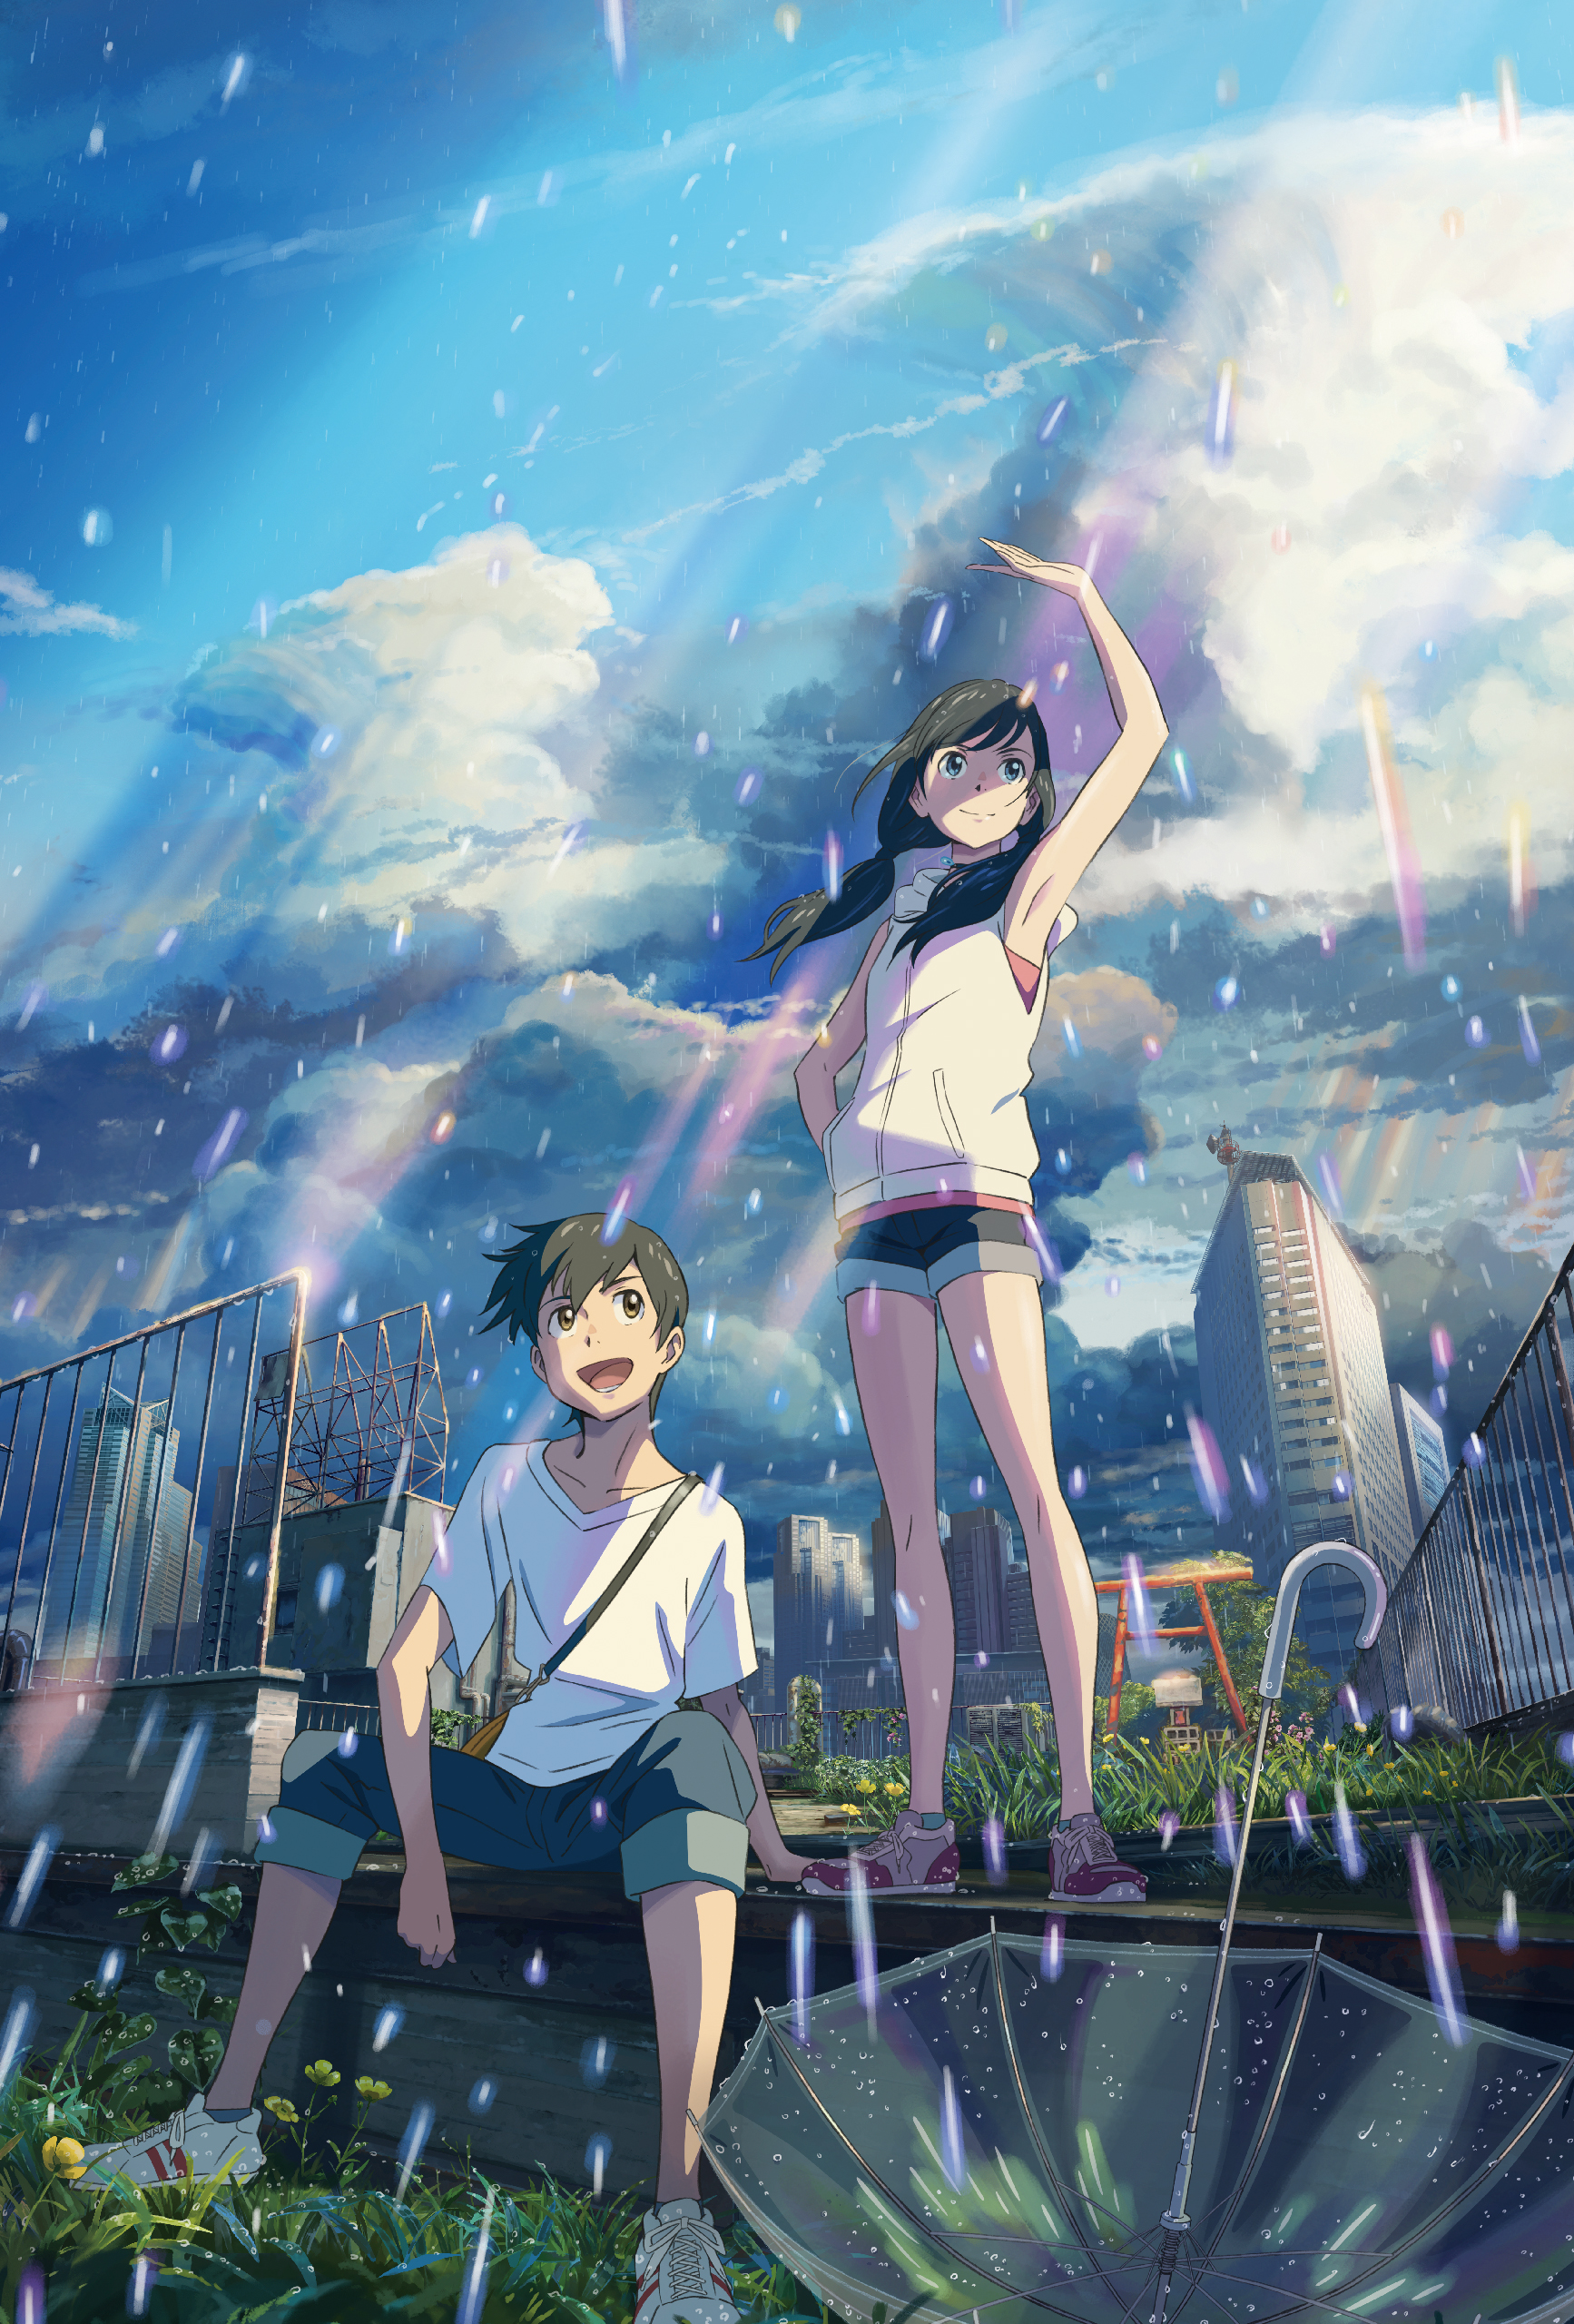 Weathering With You Anime Movie of the Year